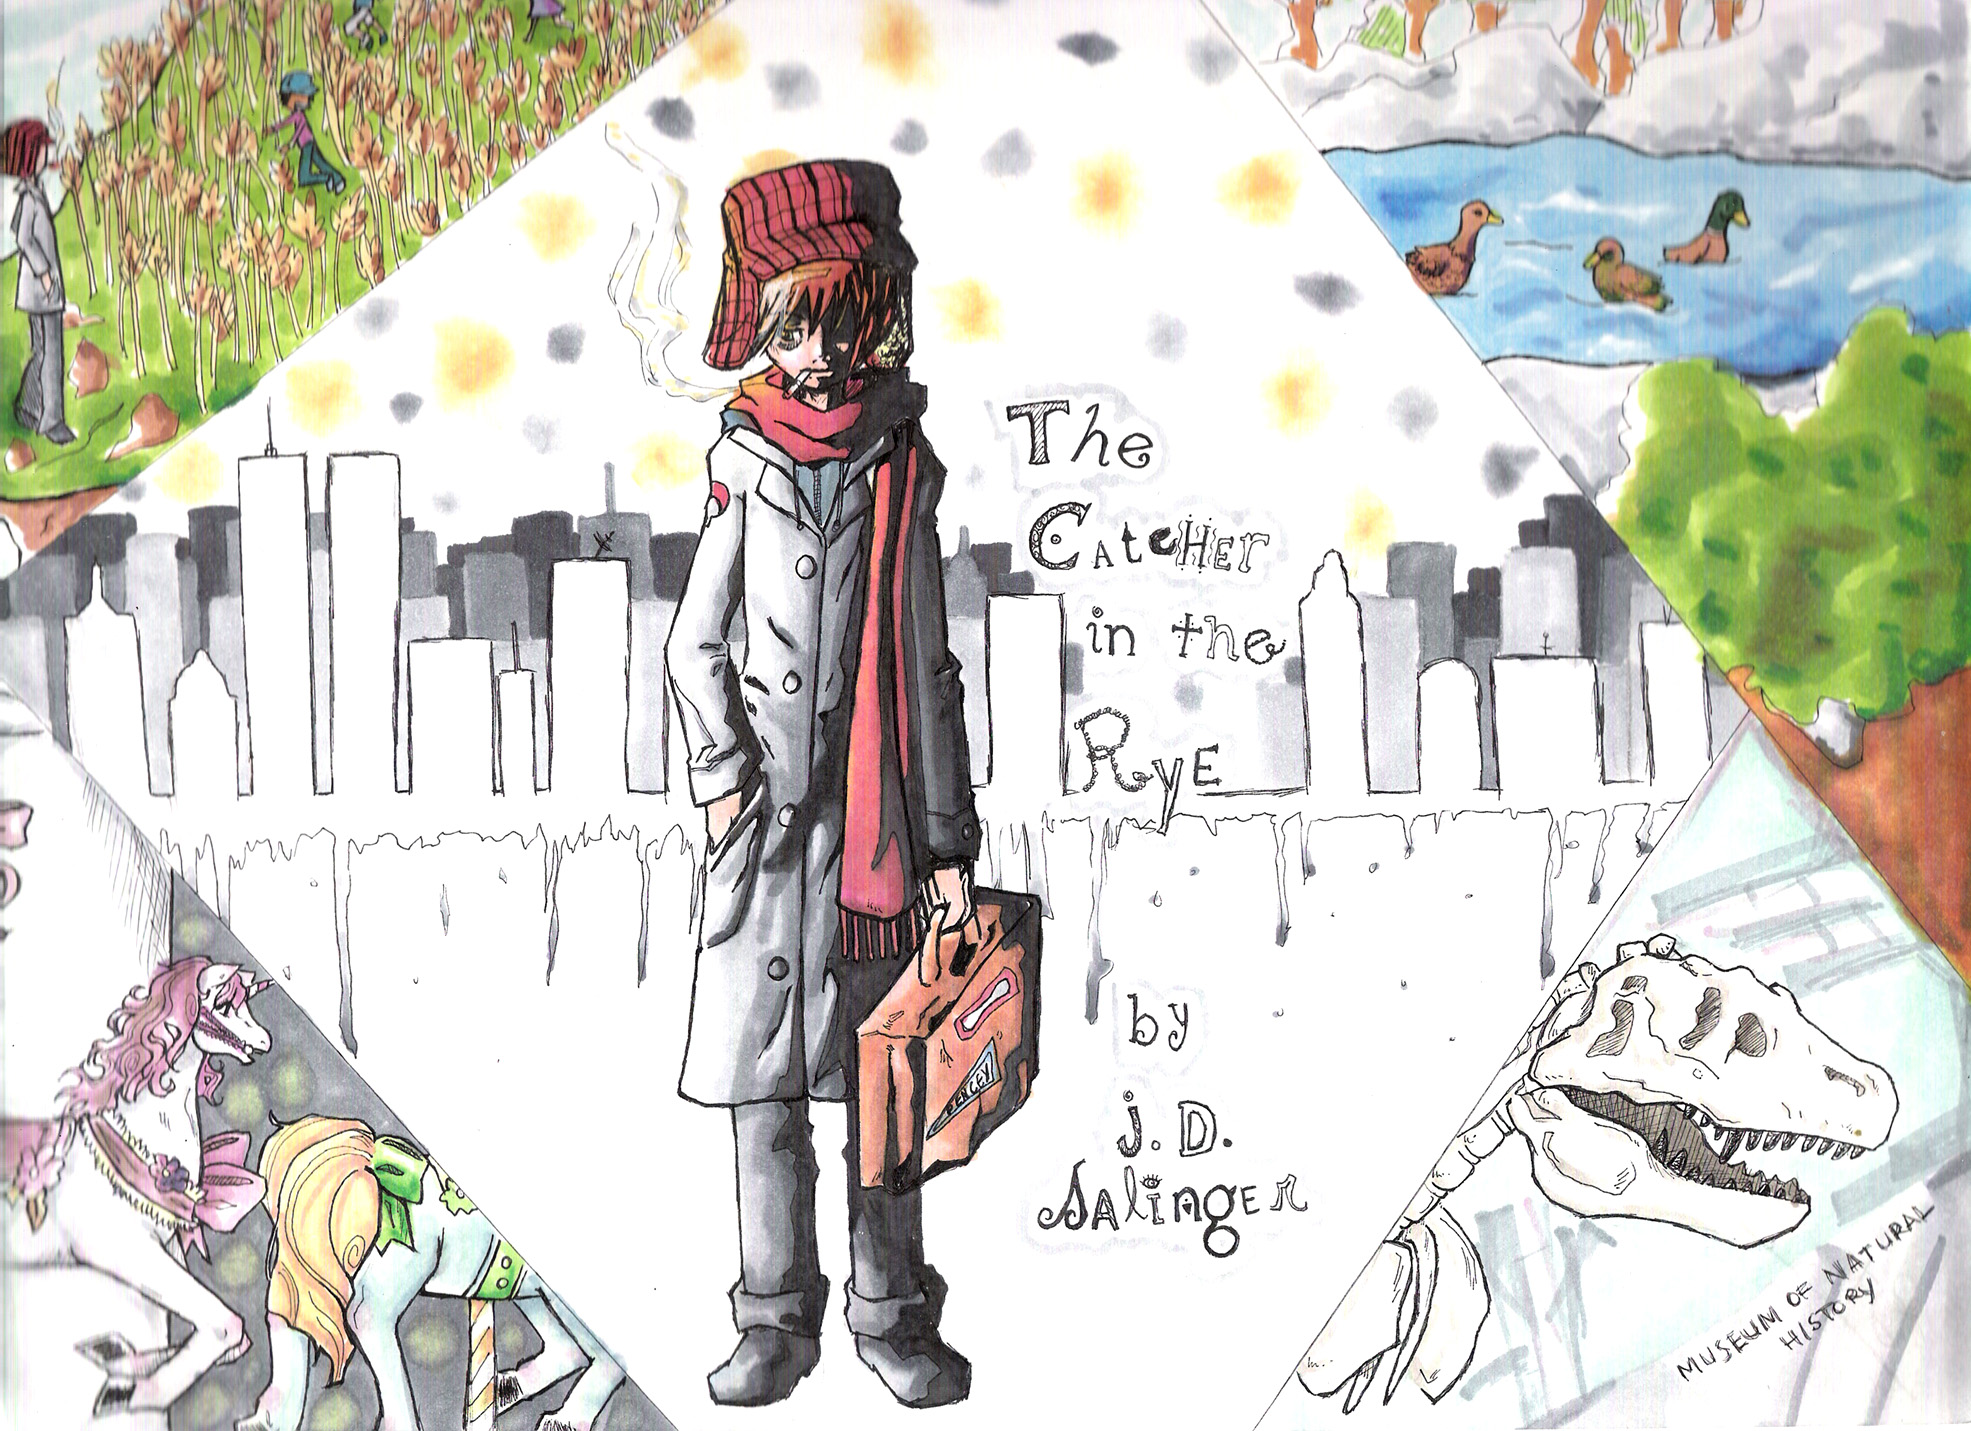 holden caulfield essay holden caulfield essay the catcher in the  the catcher in the rye symbolism essay the catcher in the rye catcher in the rye language voice and holden caulfield